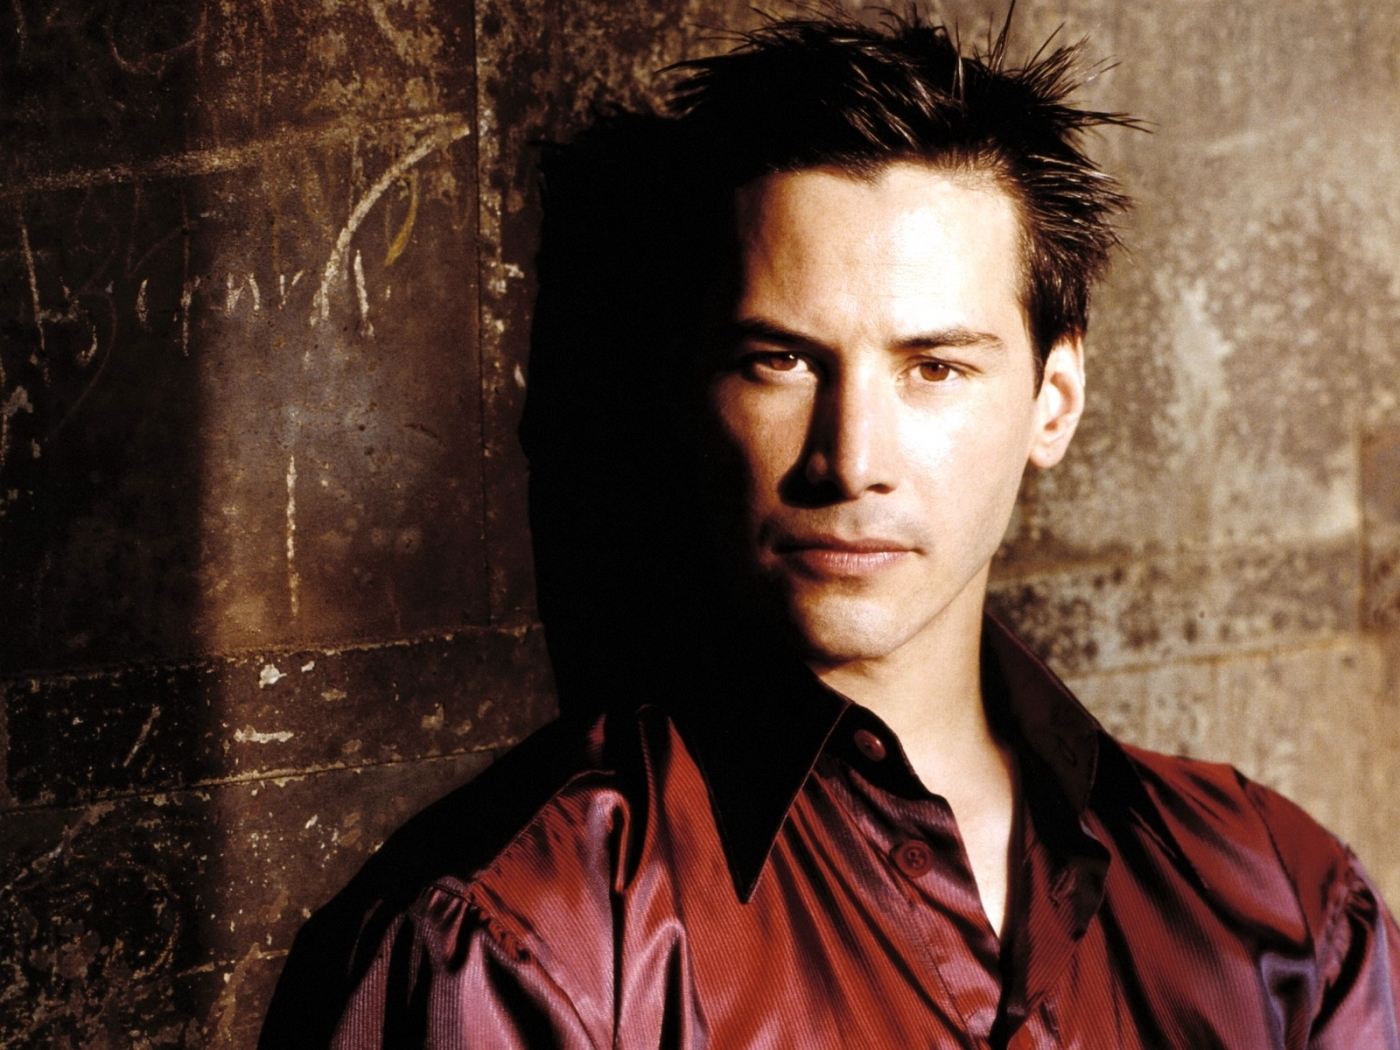 41940 download wallpaper People, Men, Keanu Reeves screensavers and pictures for free